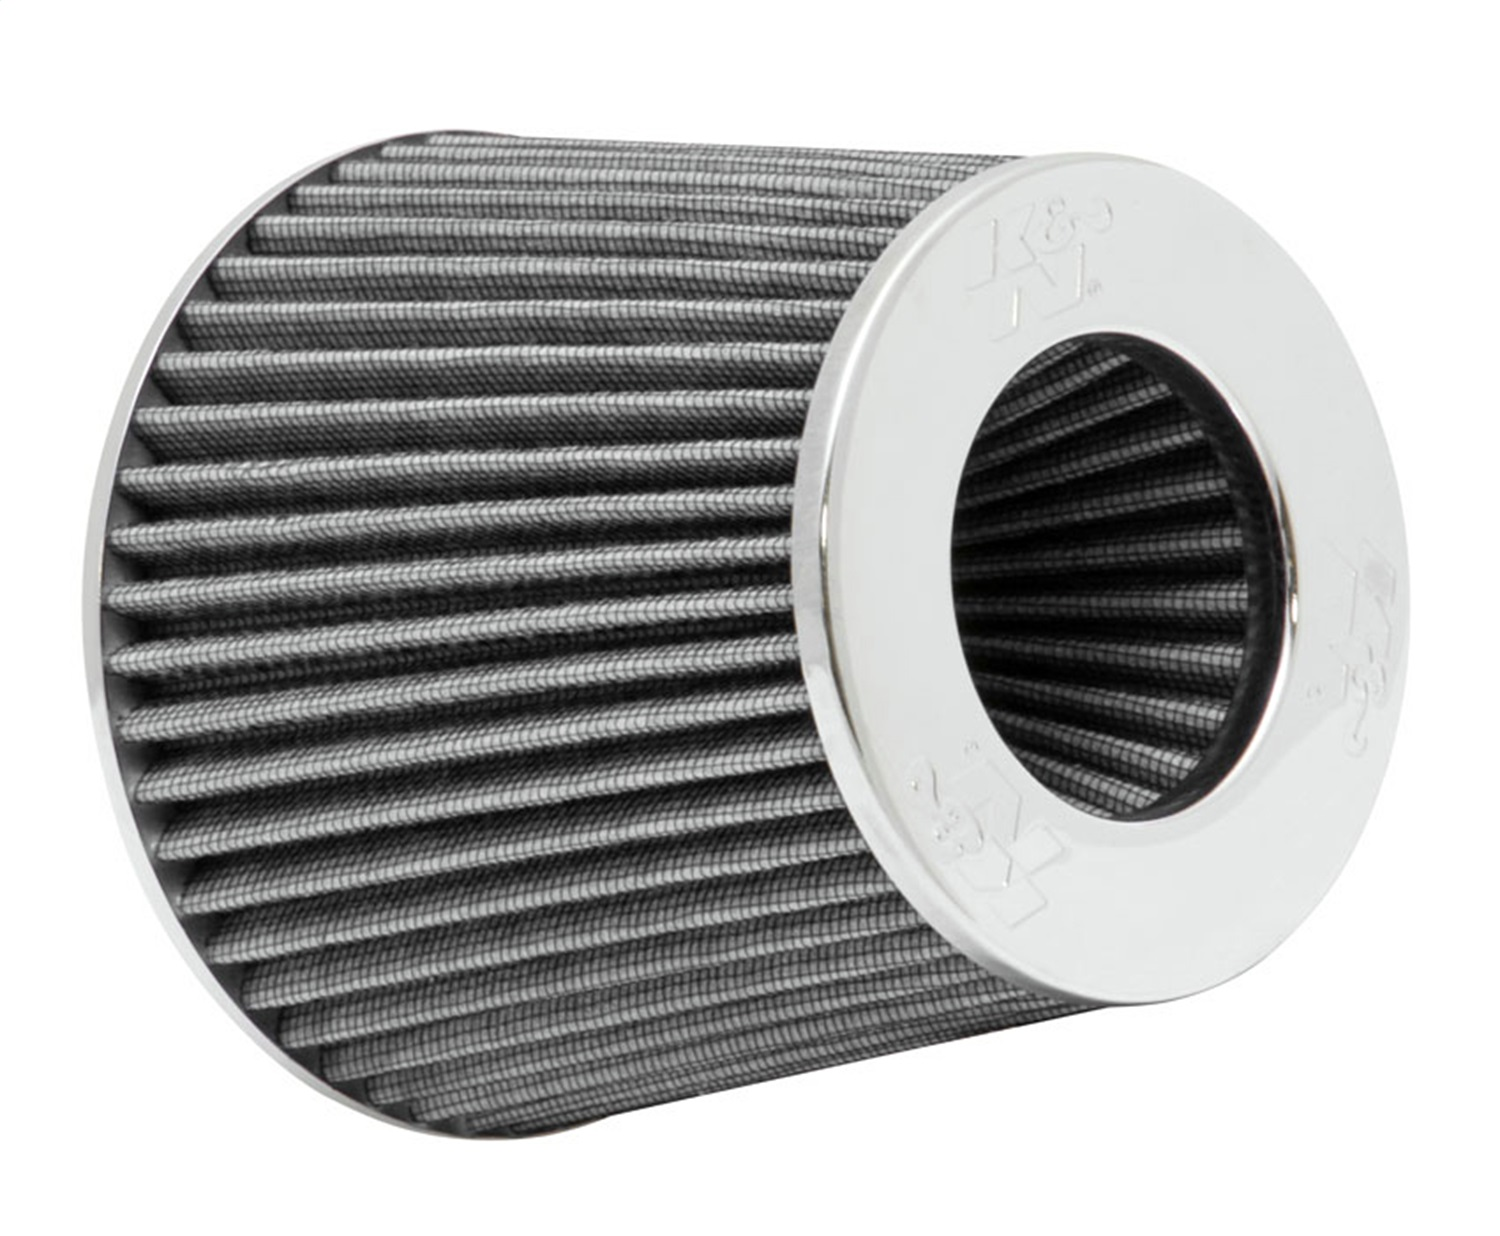 K & N Filters RG-1001WT Universal Chrome Air Filter 247593792